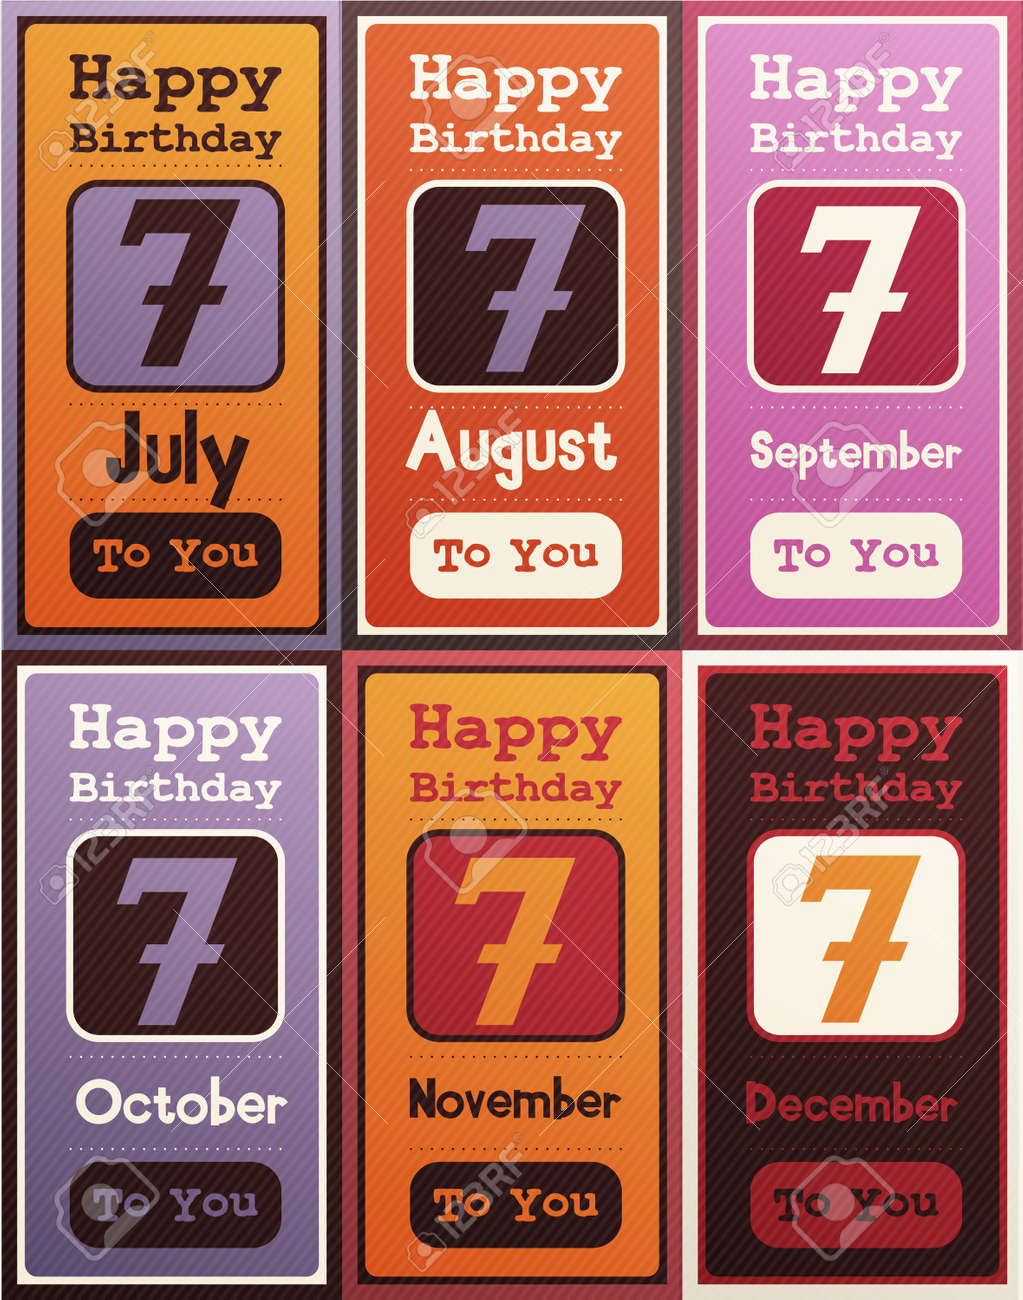 Greeting Happy Birthday CardMonth July August September October November